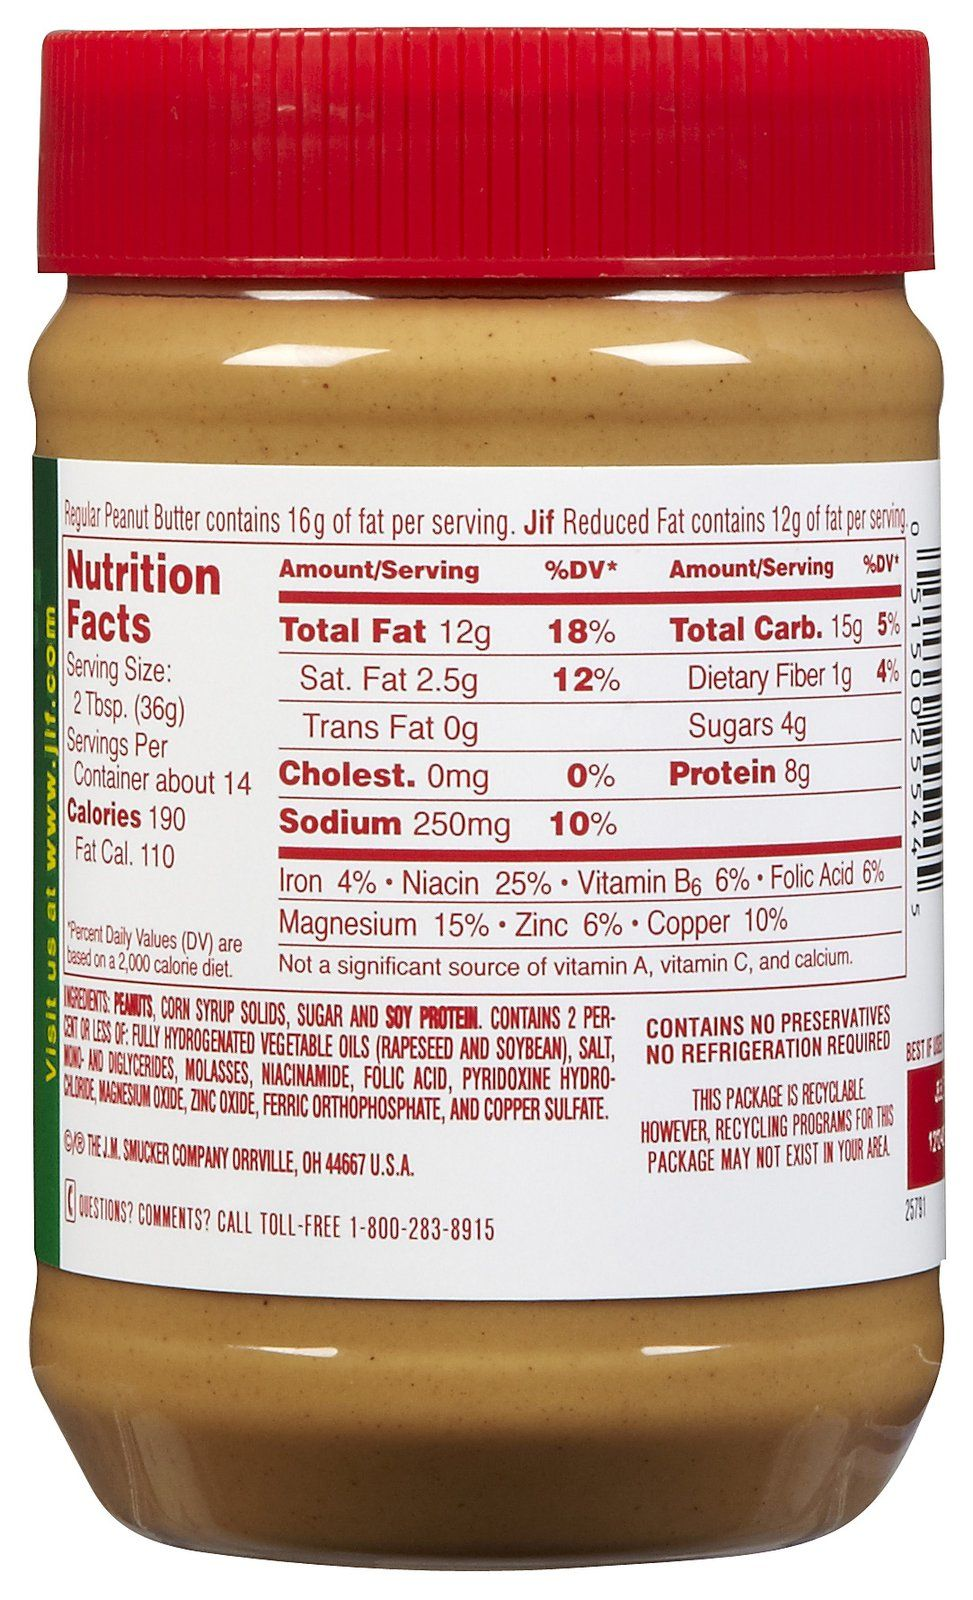 reduced fat jif peanut butter nutrition label | dollhouse printables